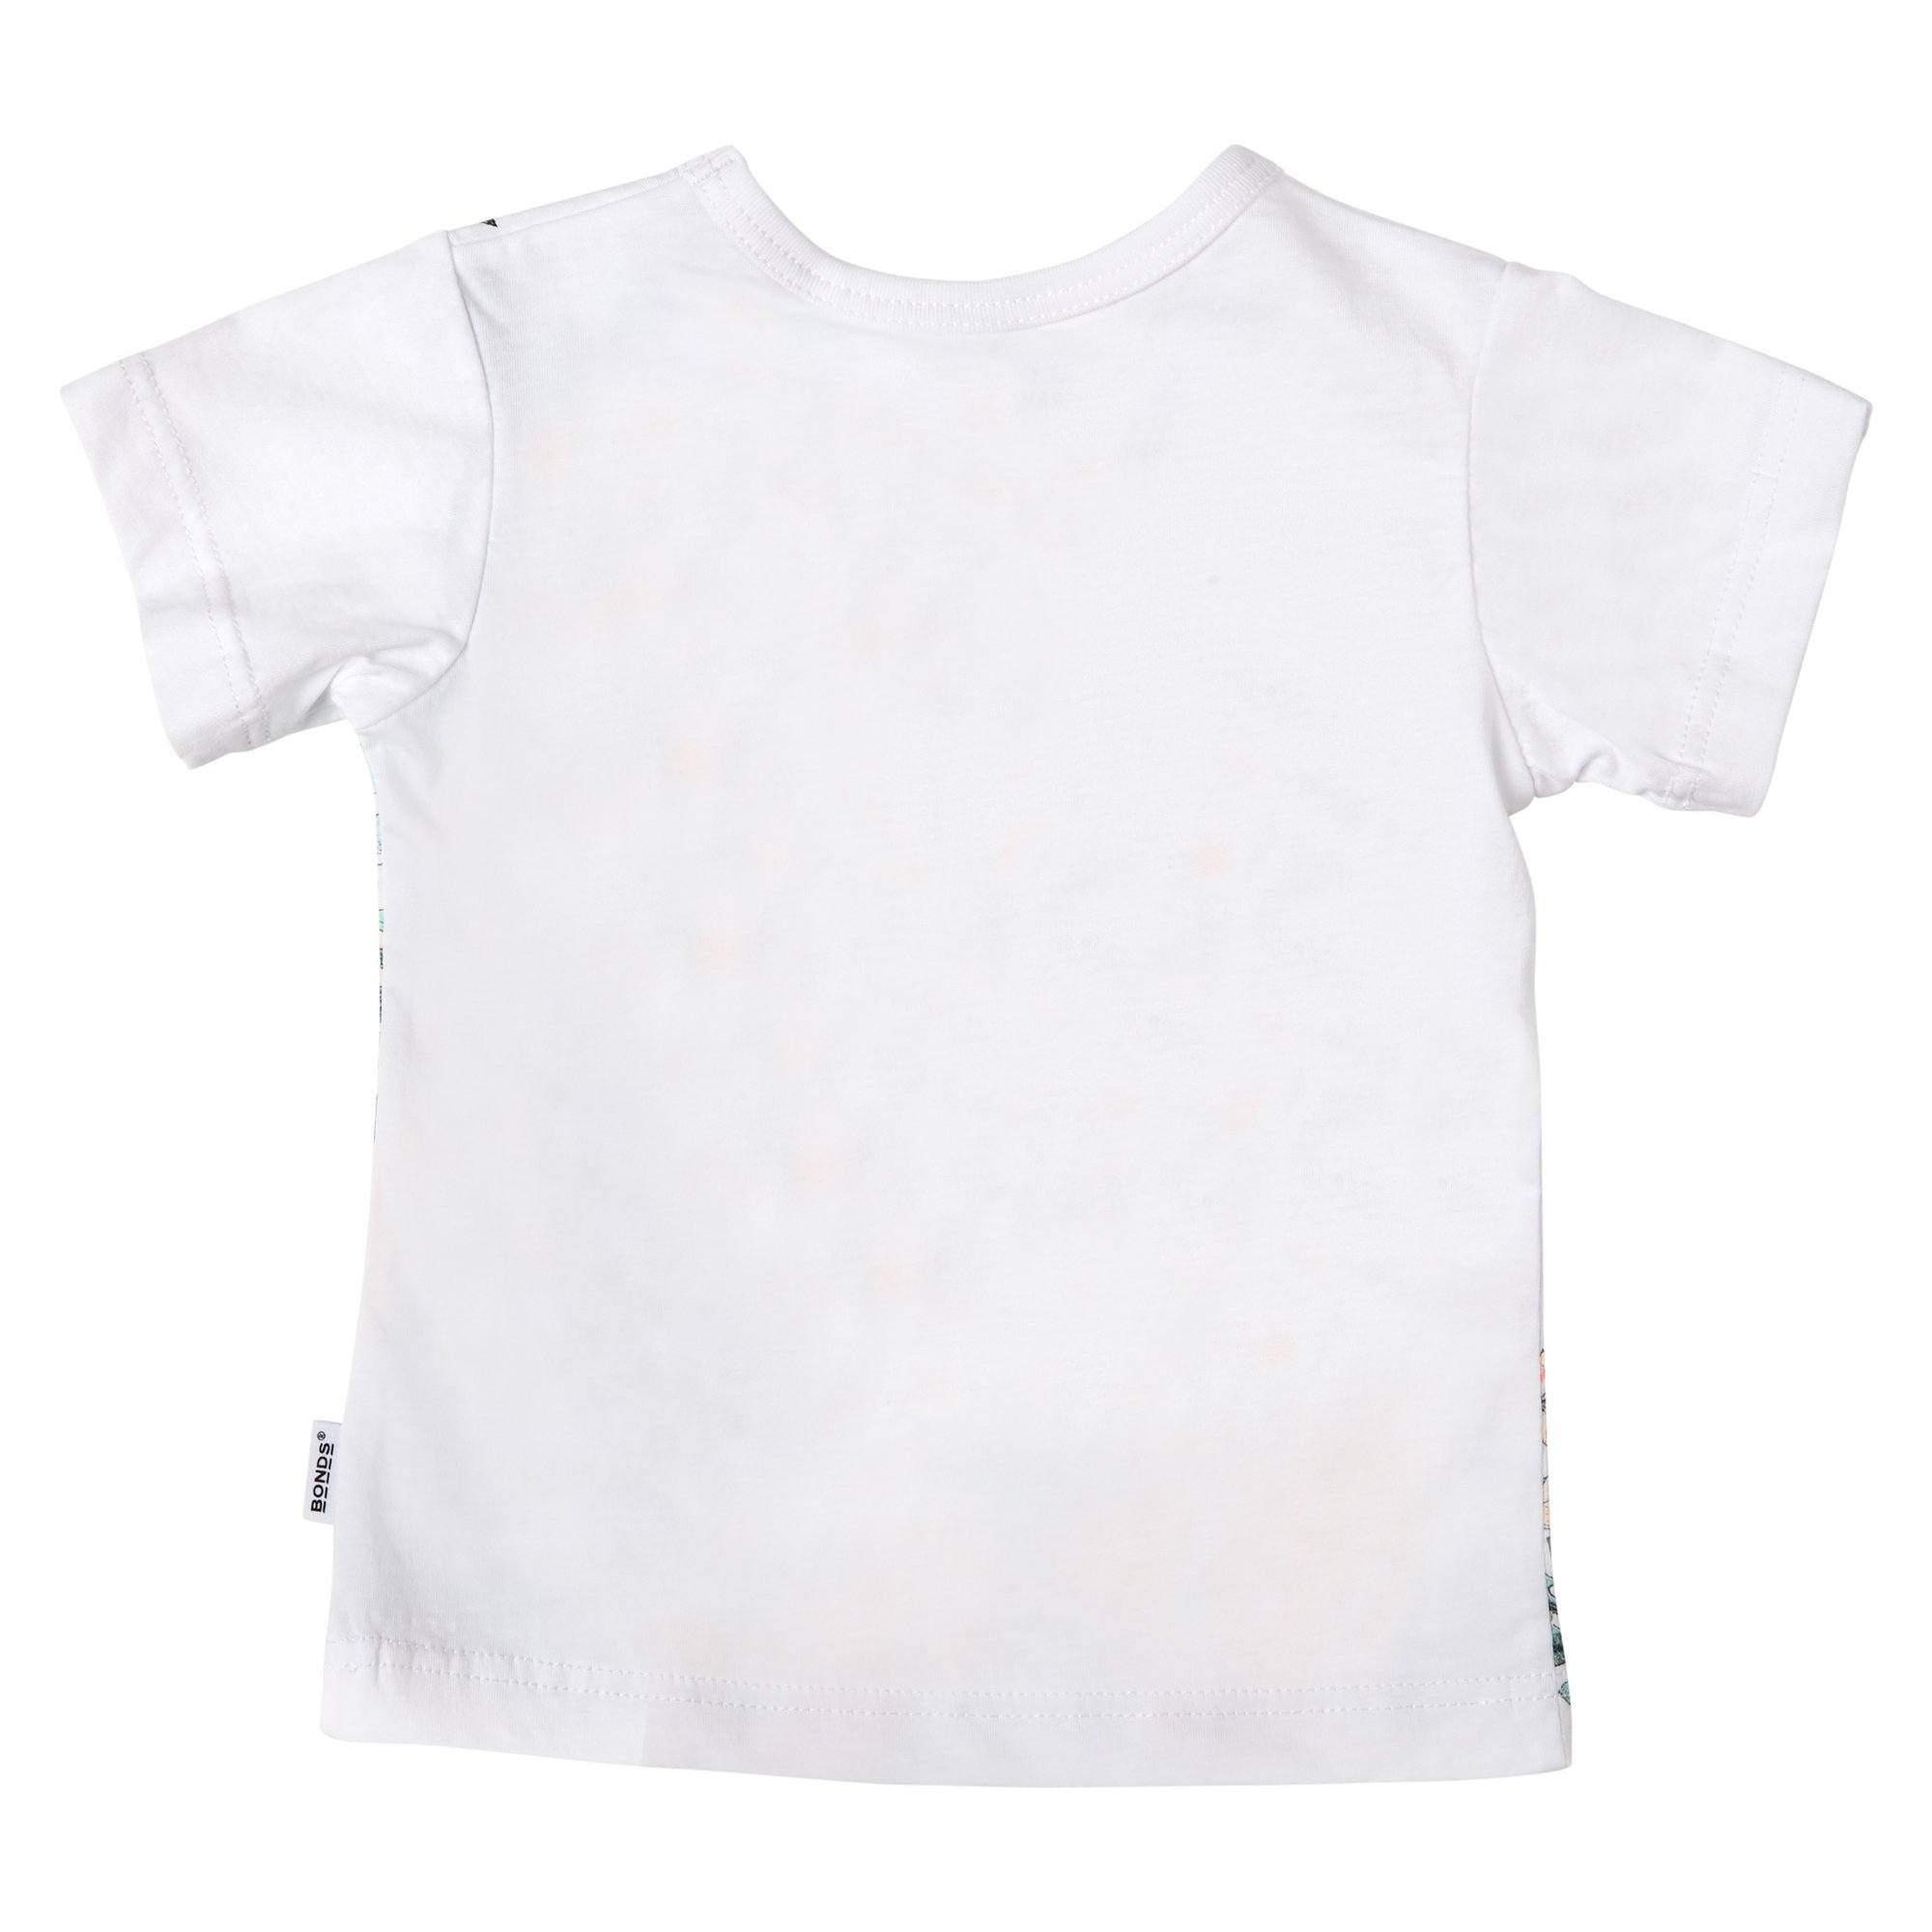 Bonds Baby The Crew Tee Floral Print White Baby Isbister & Co Wholesale